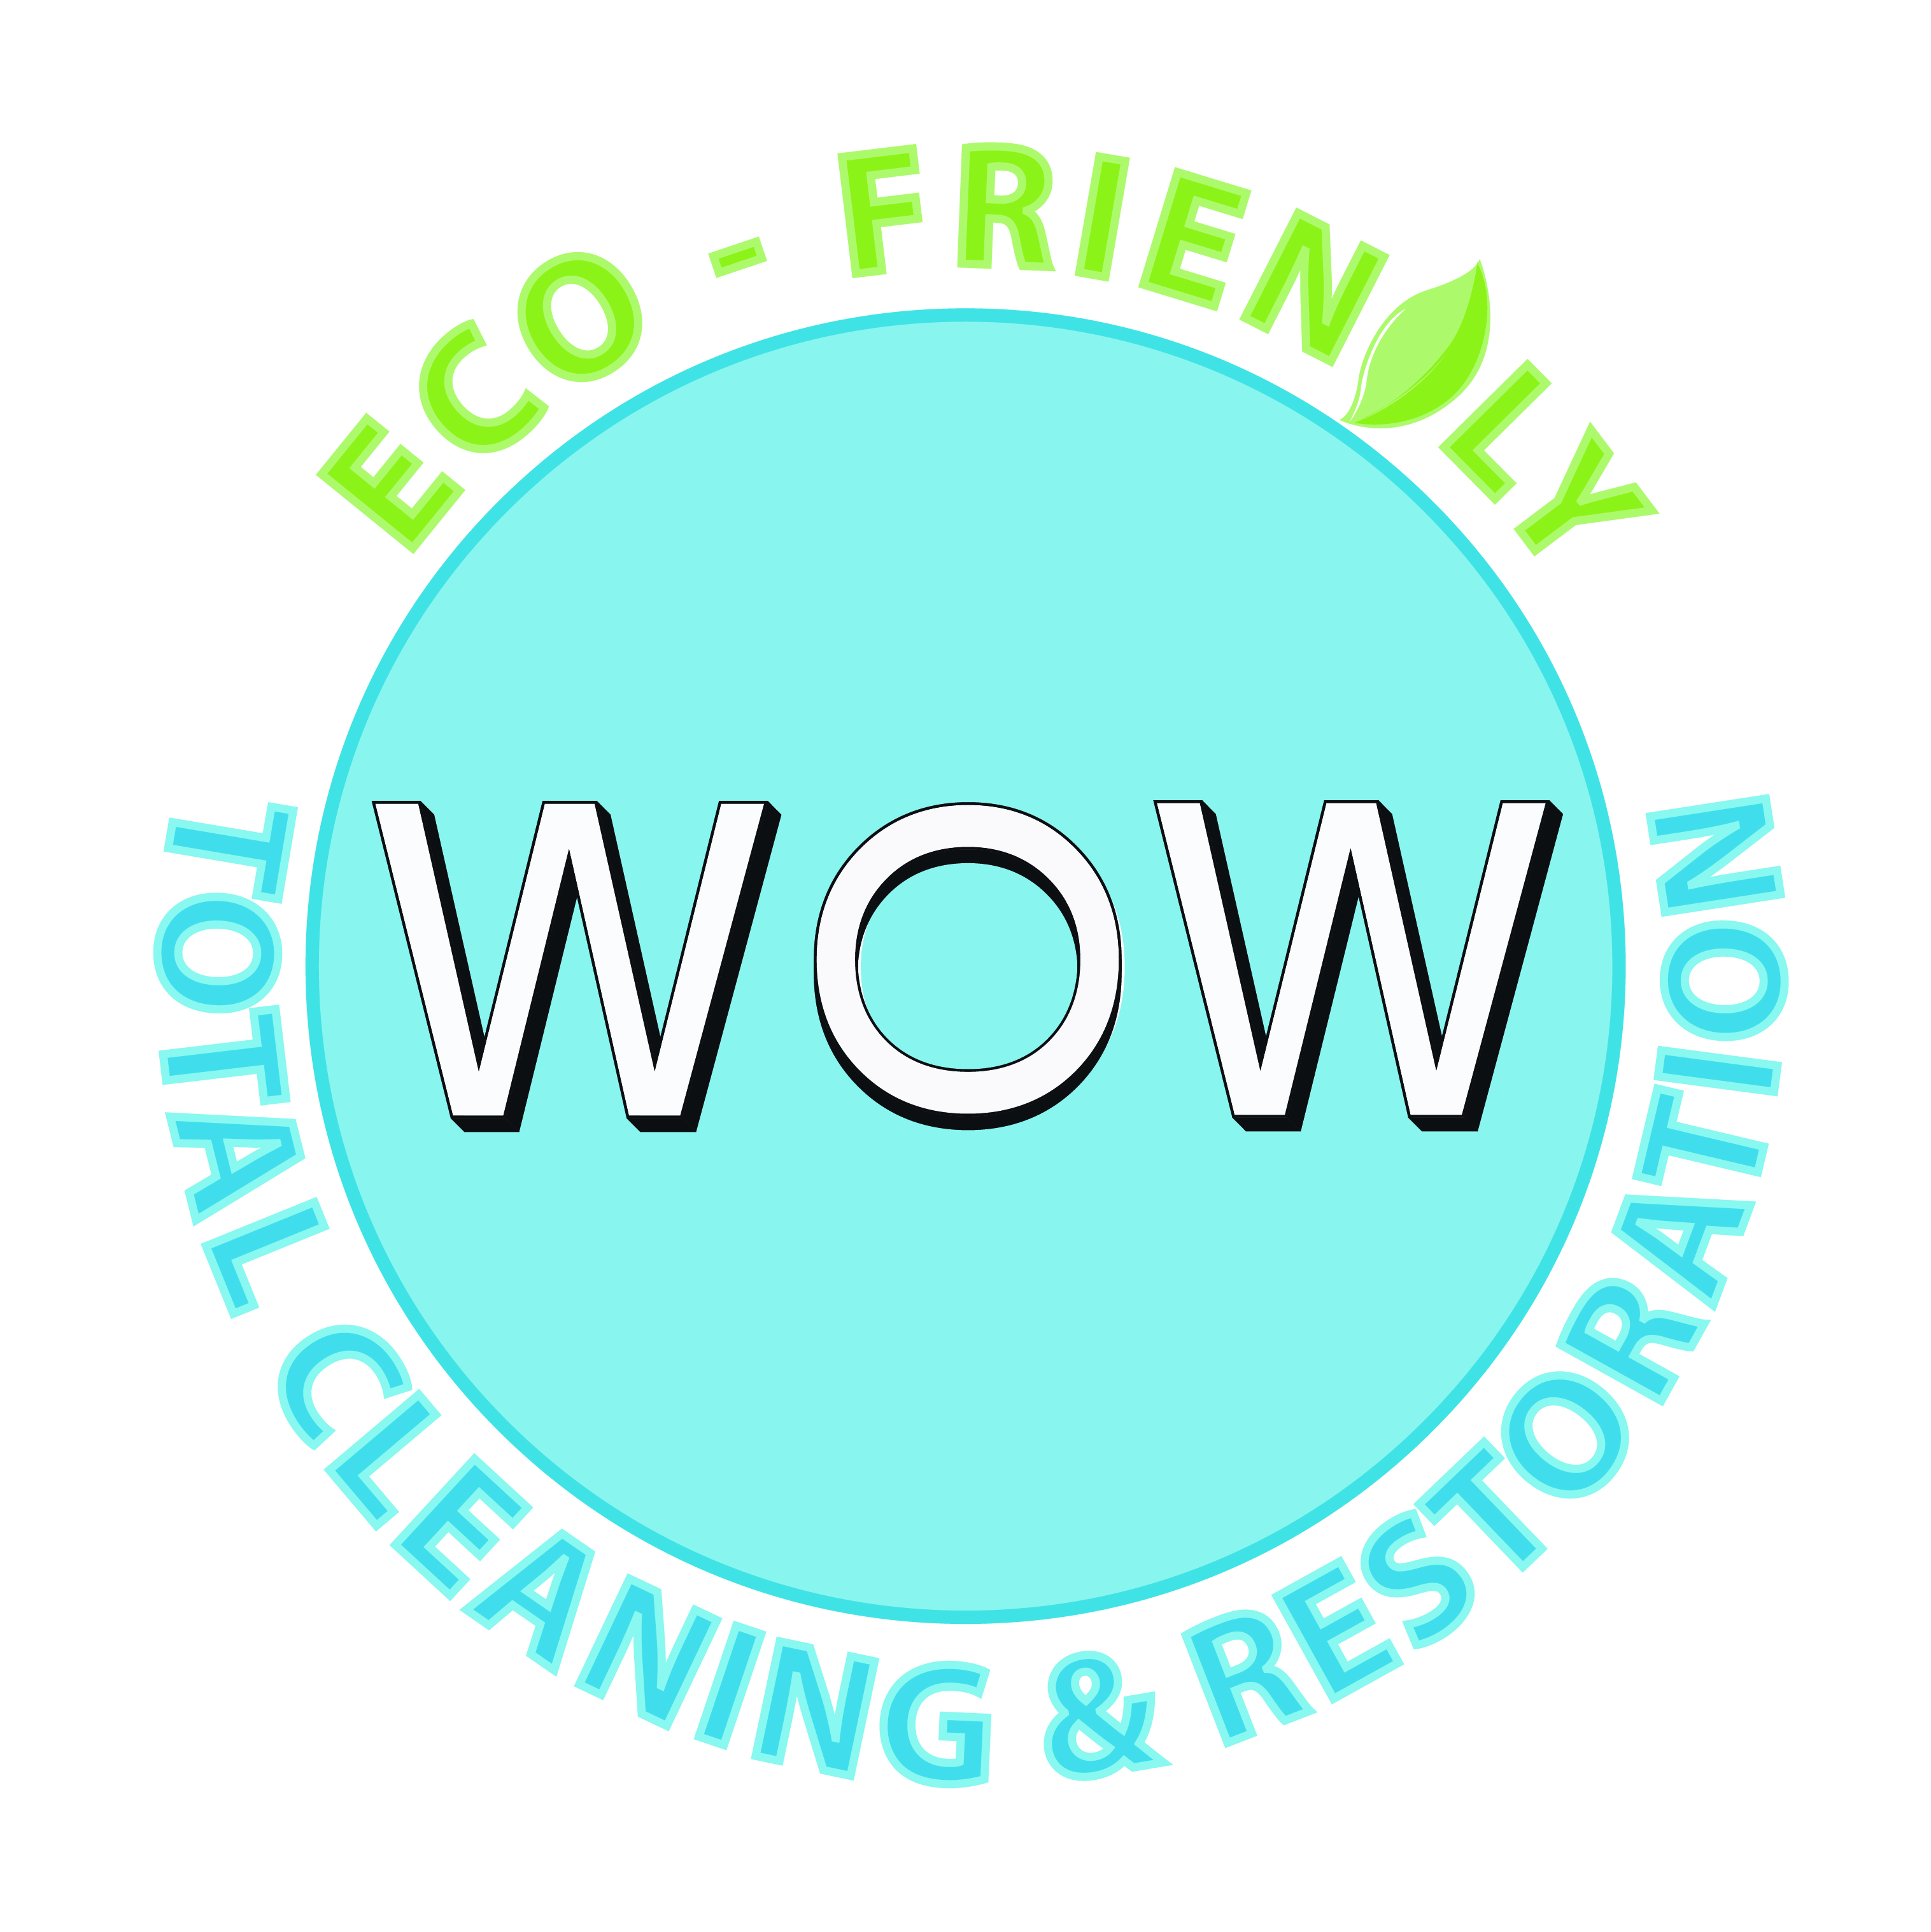 Referral Cleaning Restoration: WOW Total Cleaning & Restoration